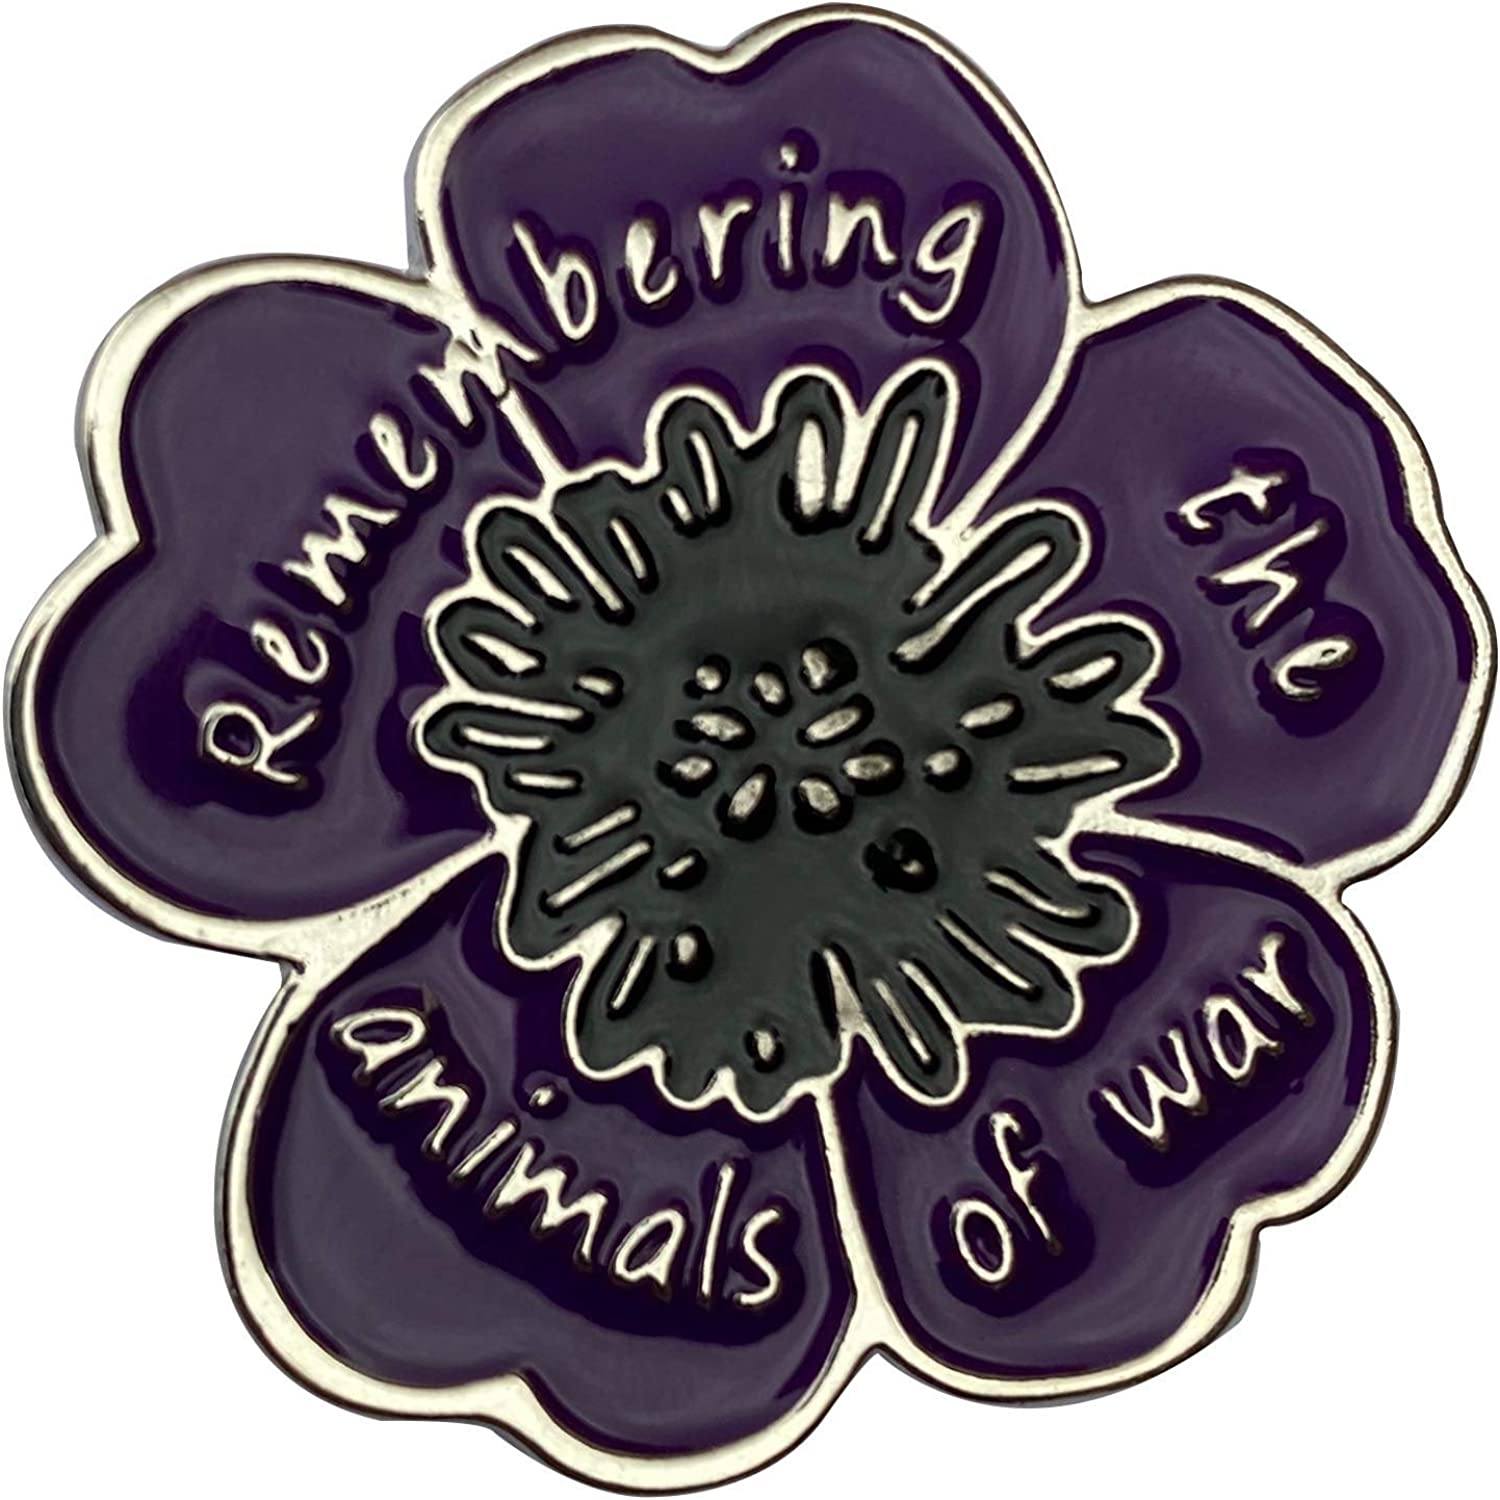 REMEMBERING THE ANIMALS OF WAR New Purple Flower Poppy Day Badge BRAND NEW